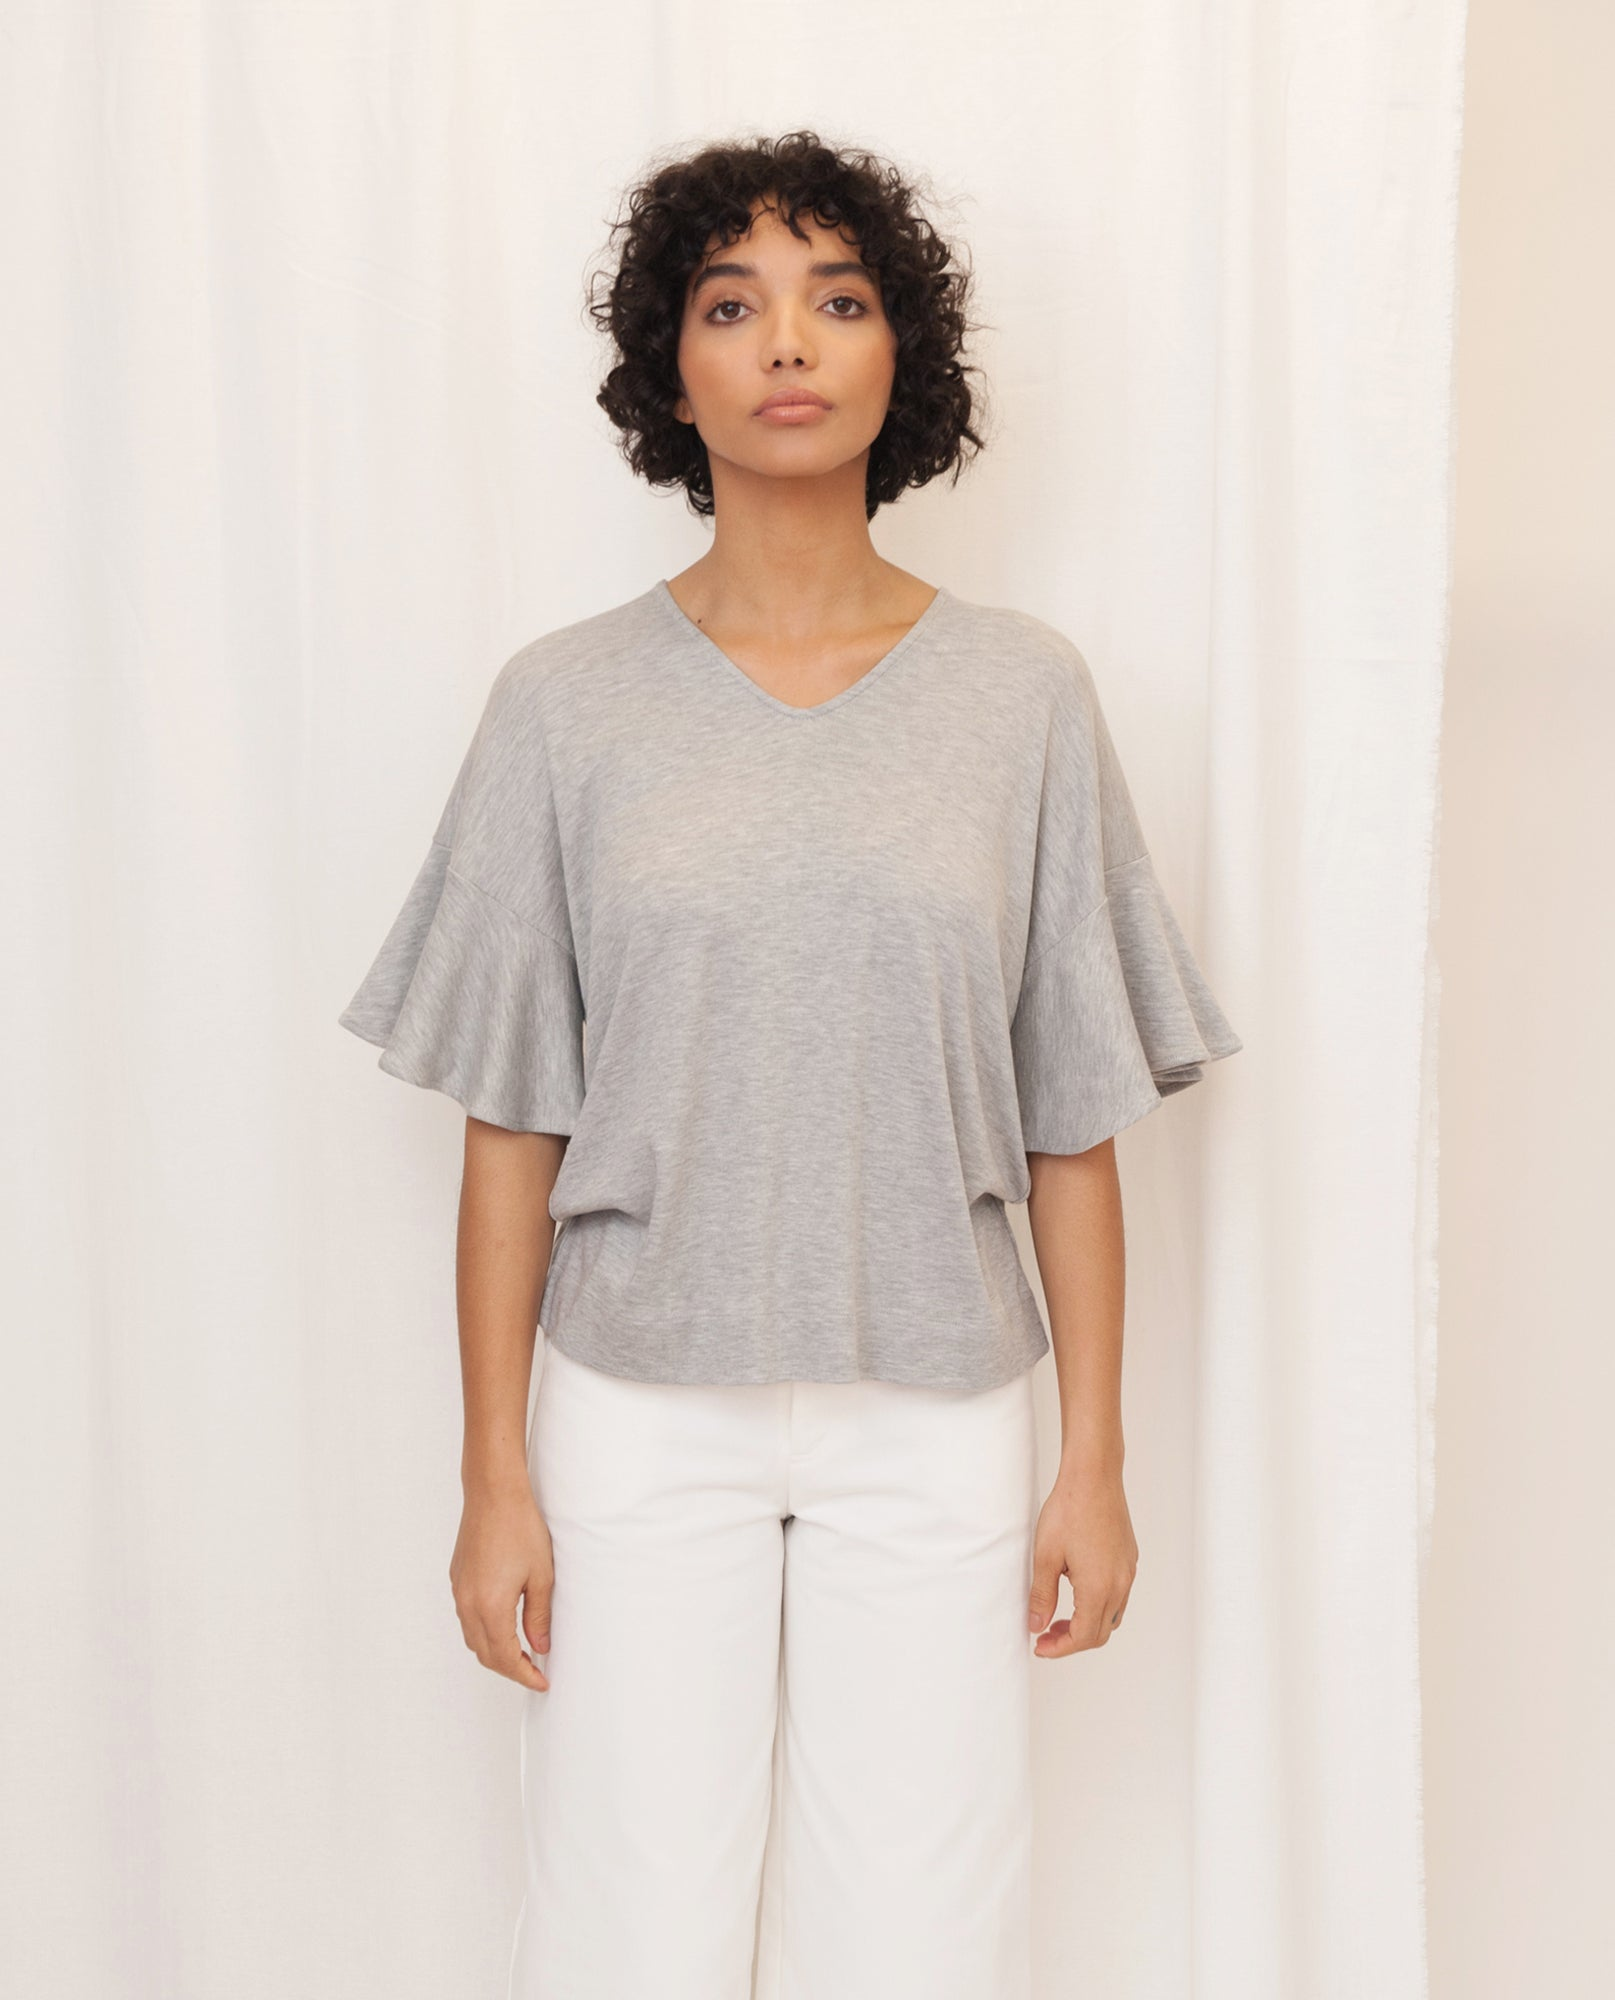 ESTER Lyocell Jersey Top In Grey Marl from Beaumont Organic